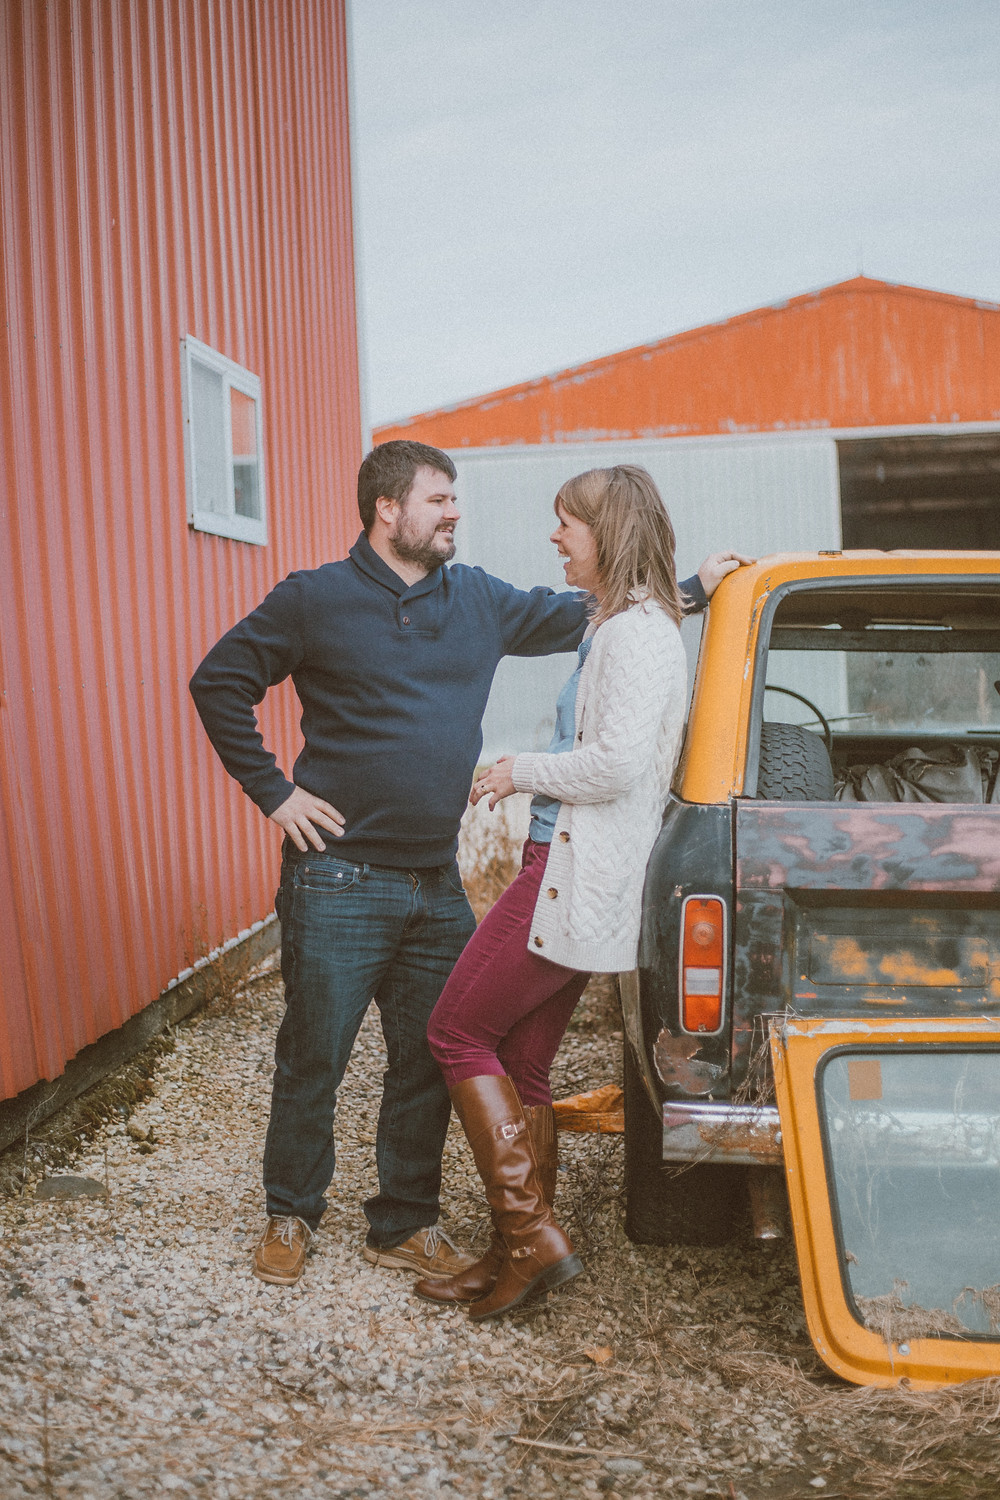 Husband and wife flirting against a car. Lifestyle couples photography by Anna Gutermuth.